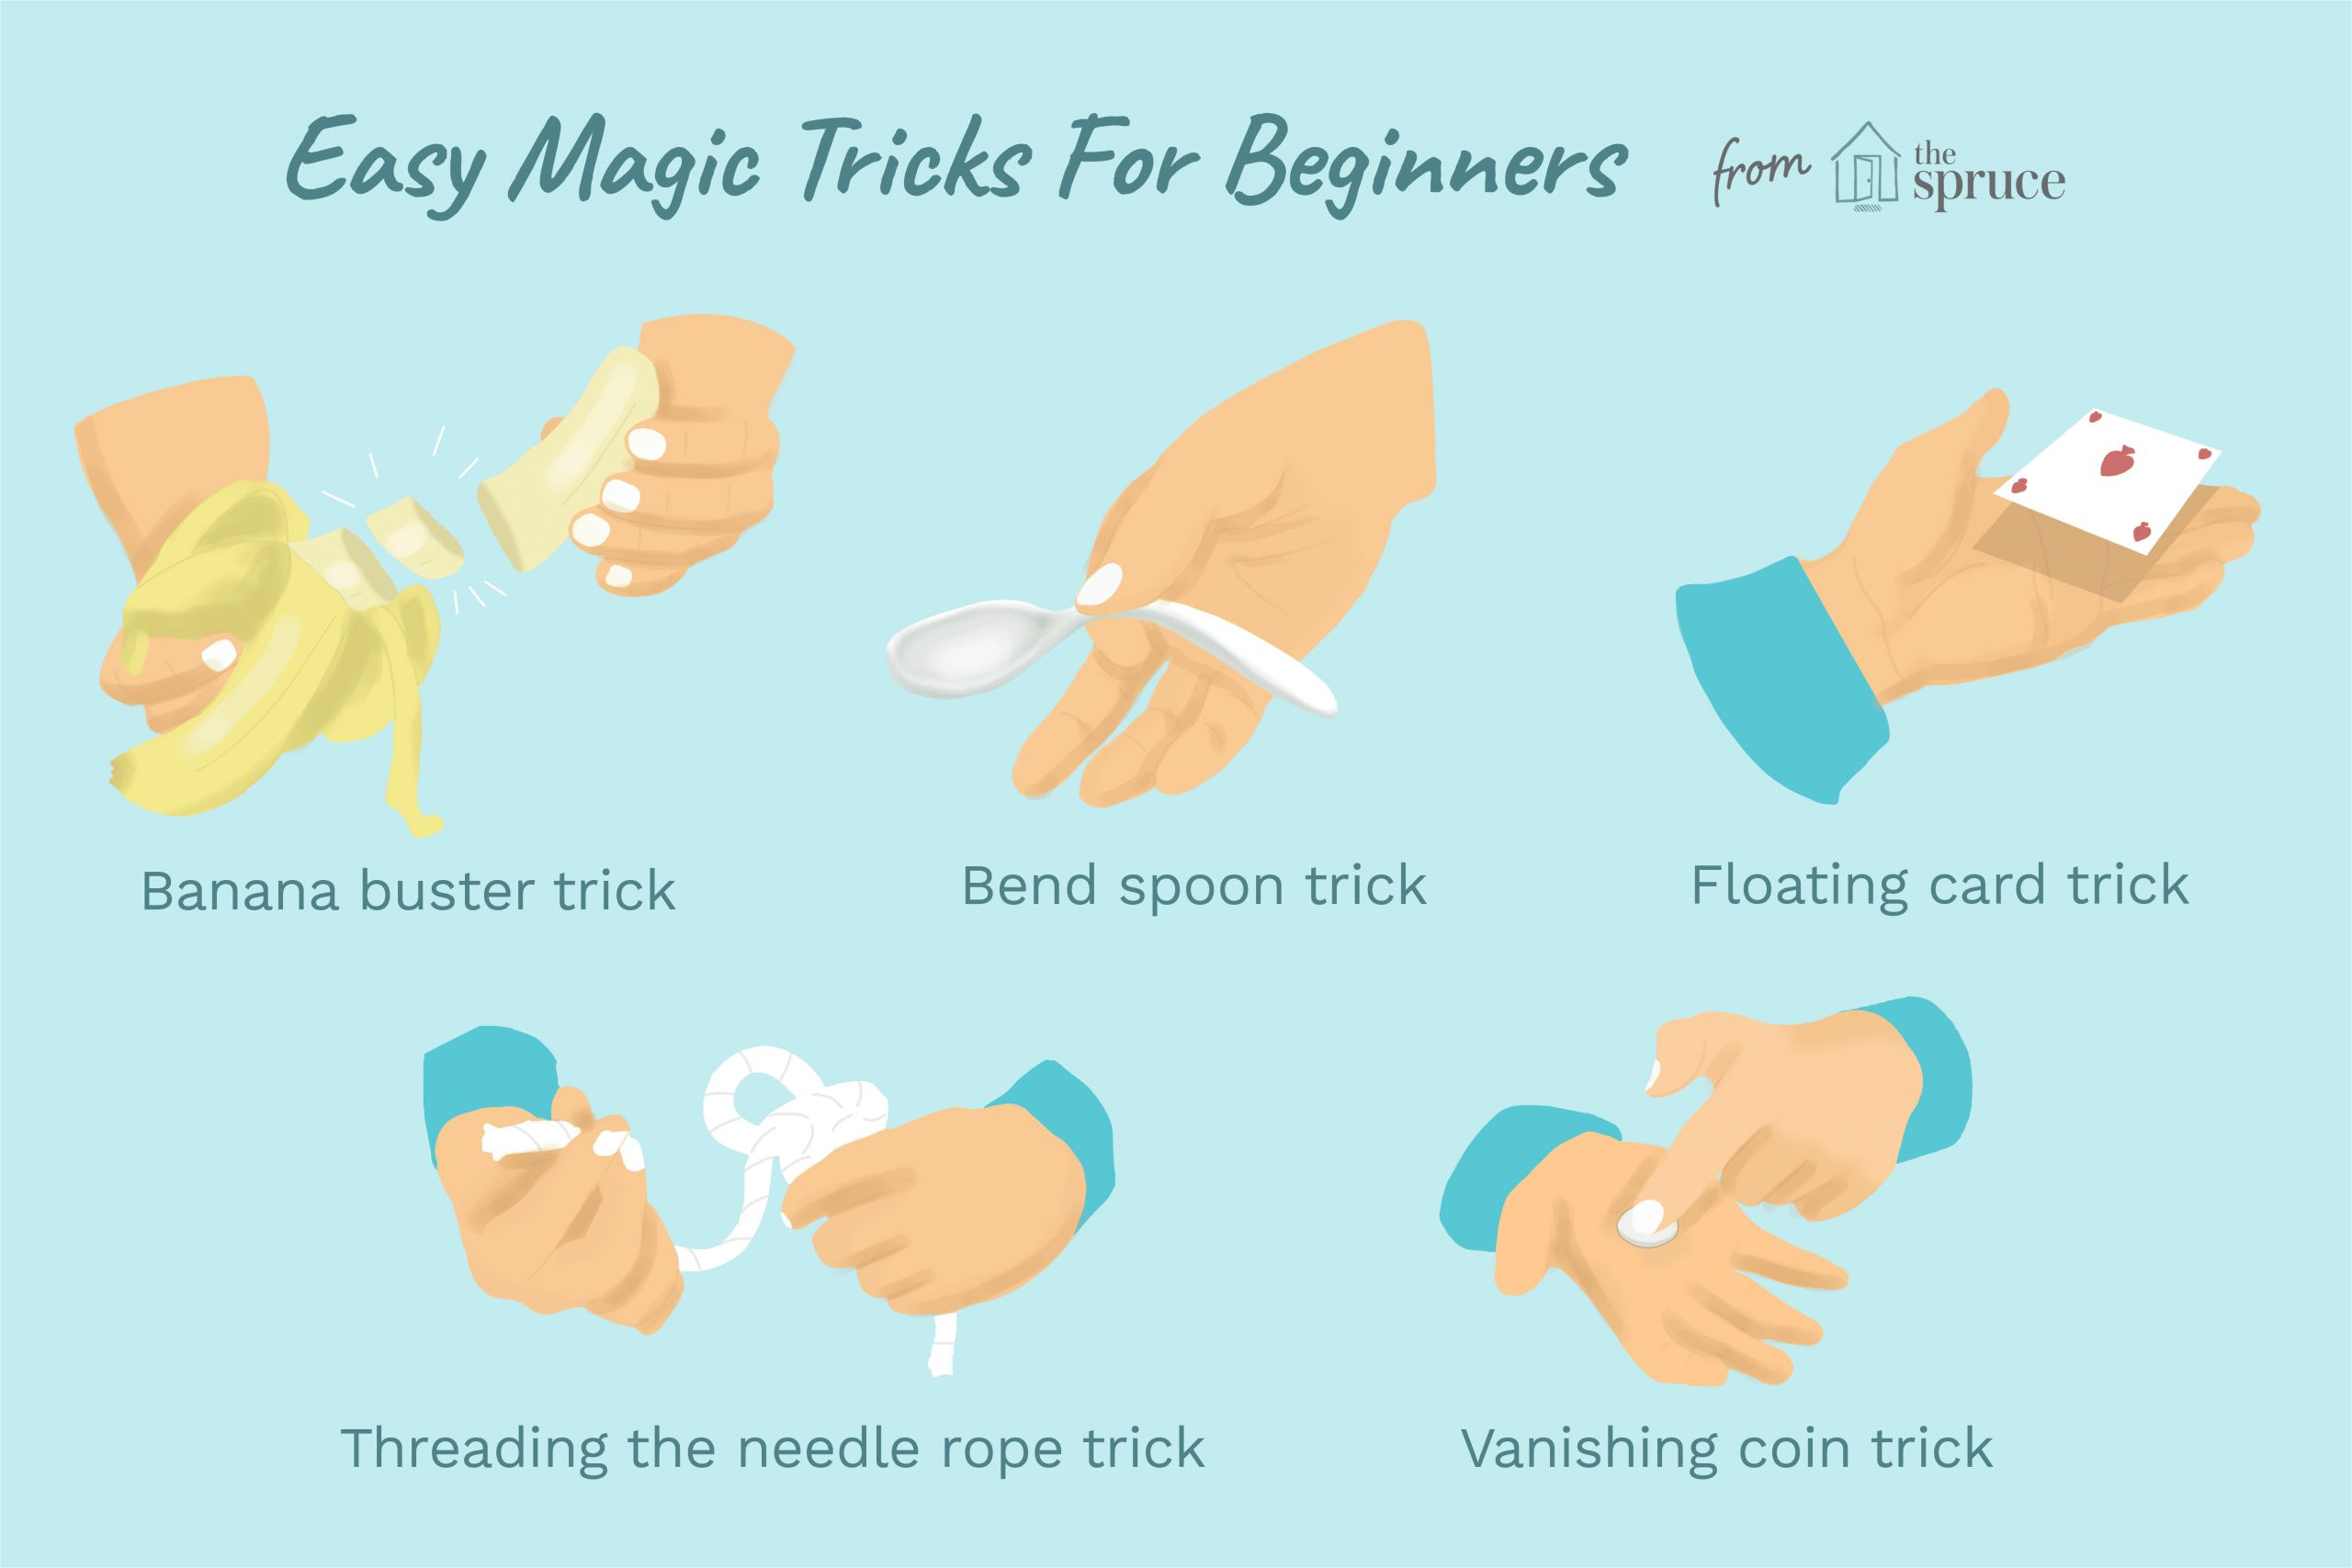 magic tricks for beginners and kids 2267083v3 5bbe4d7e46e0fb0026c5a395 png